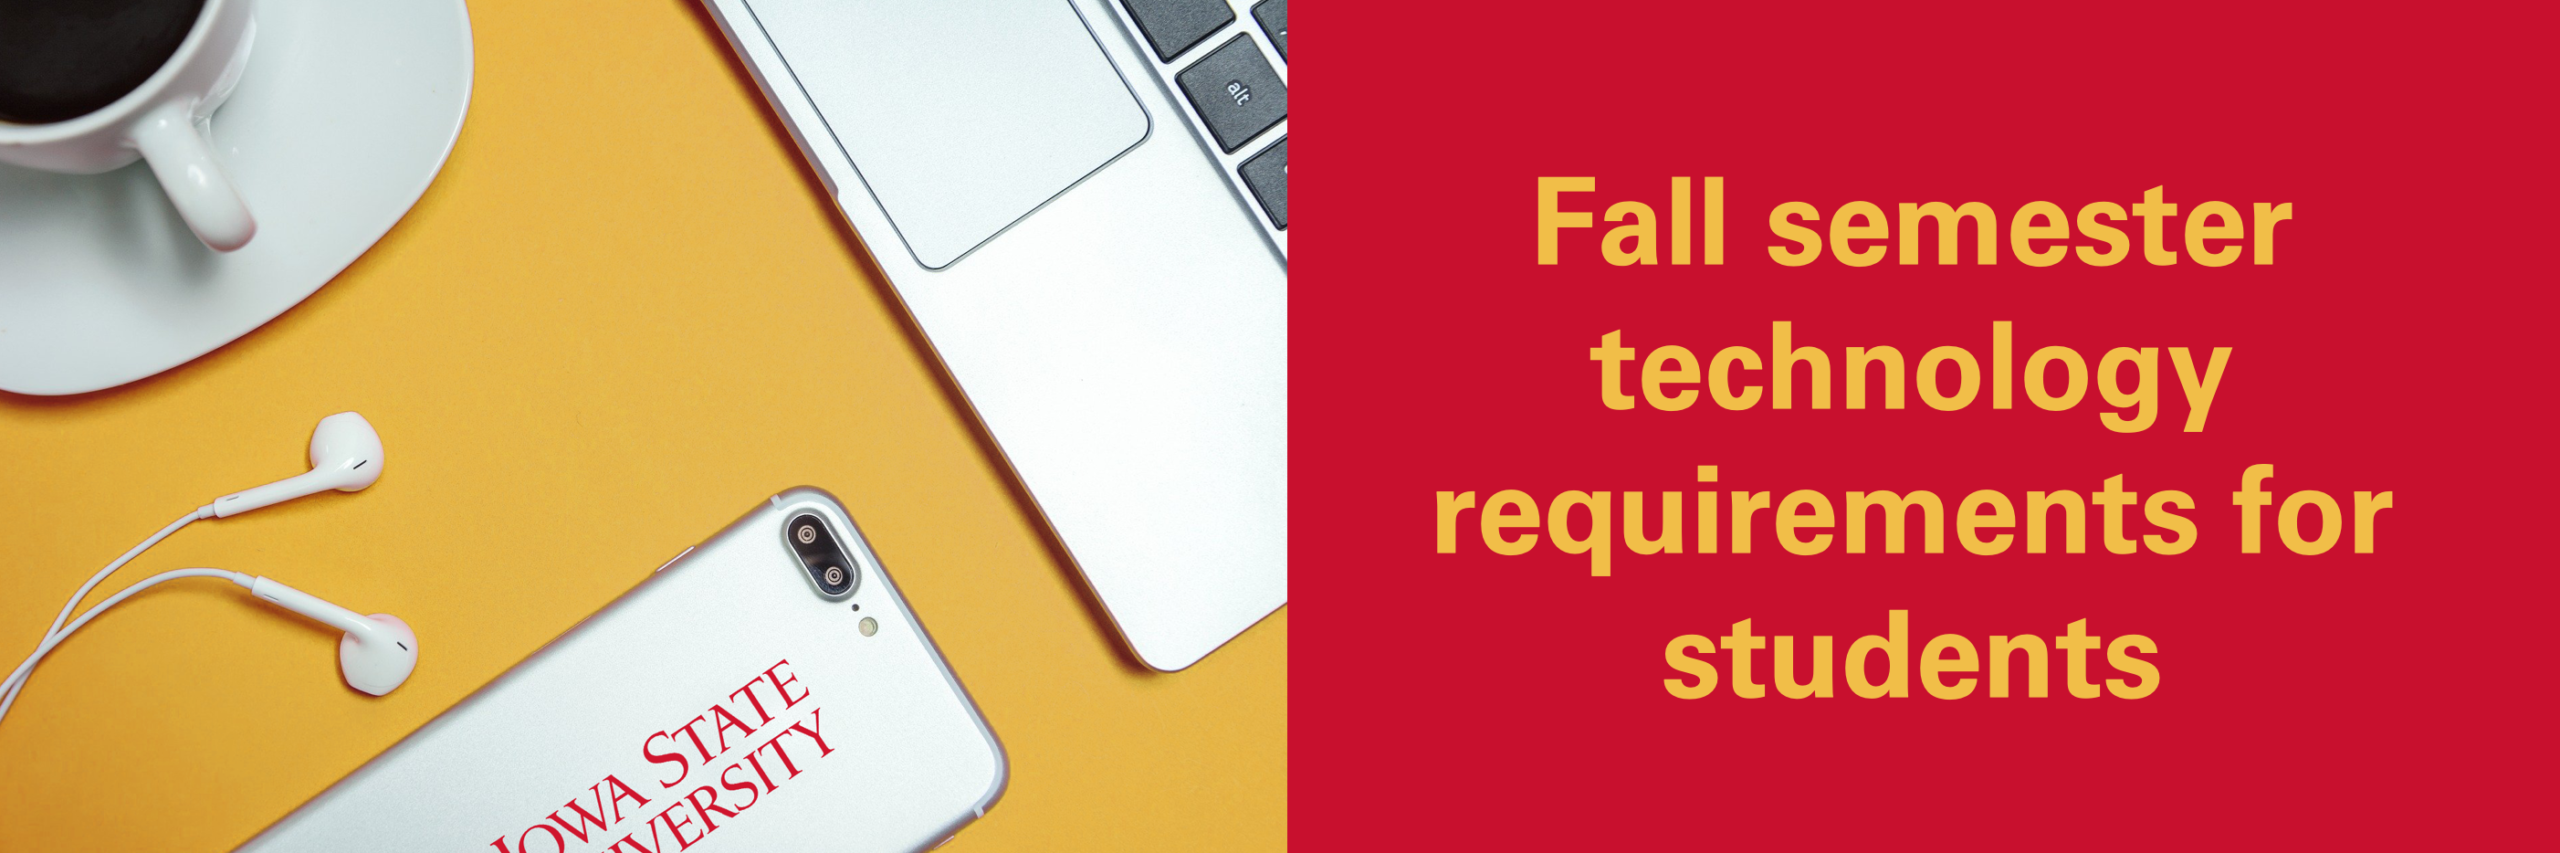 Fall semester technology requirements for students